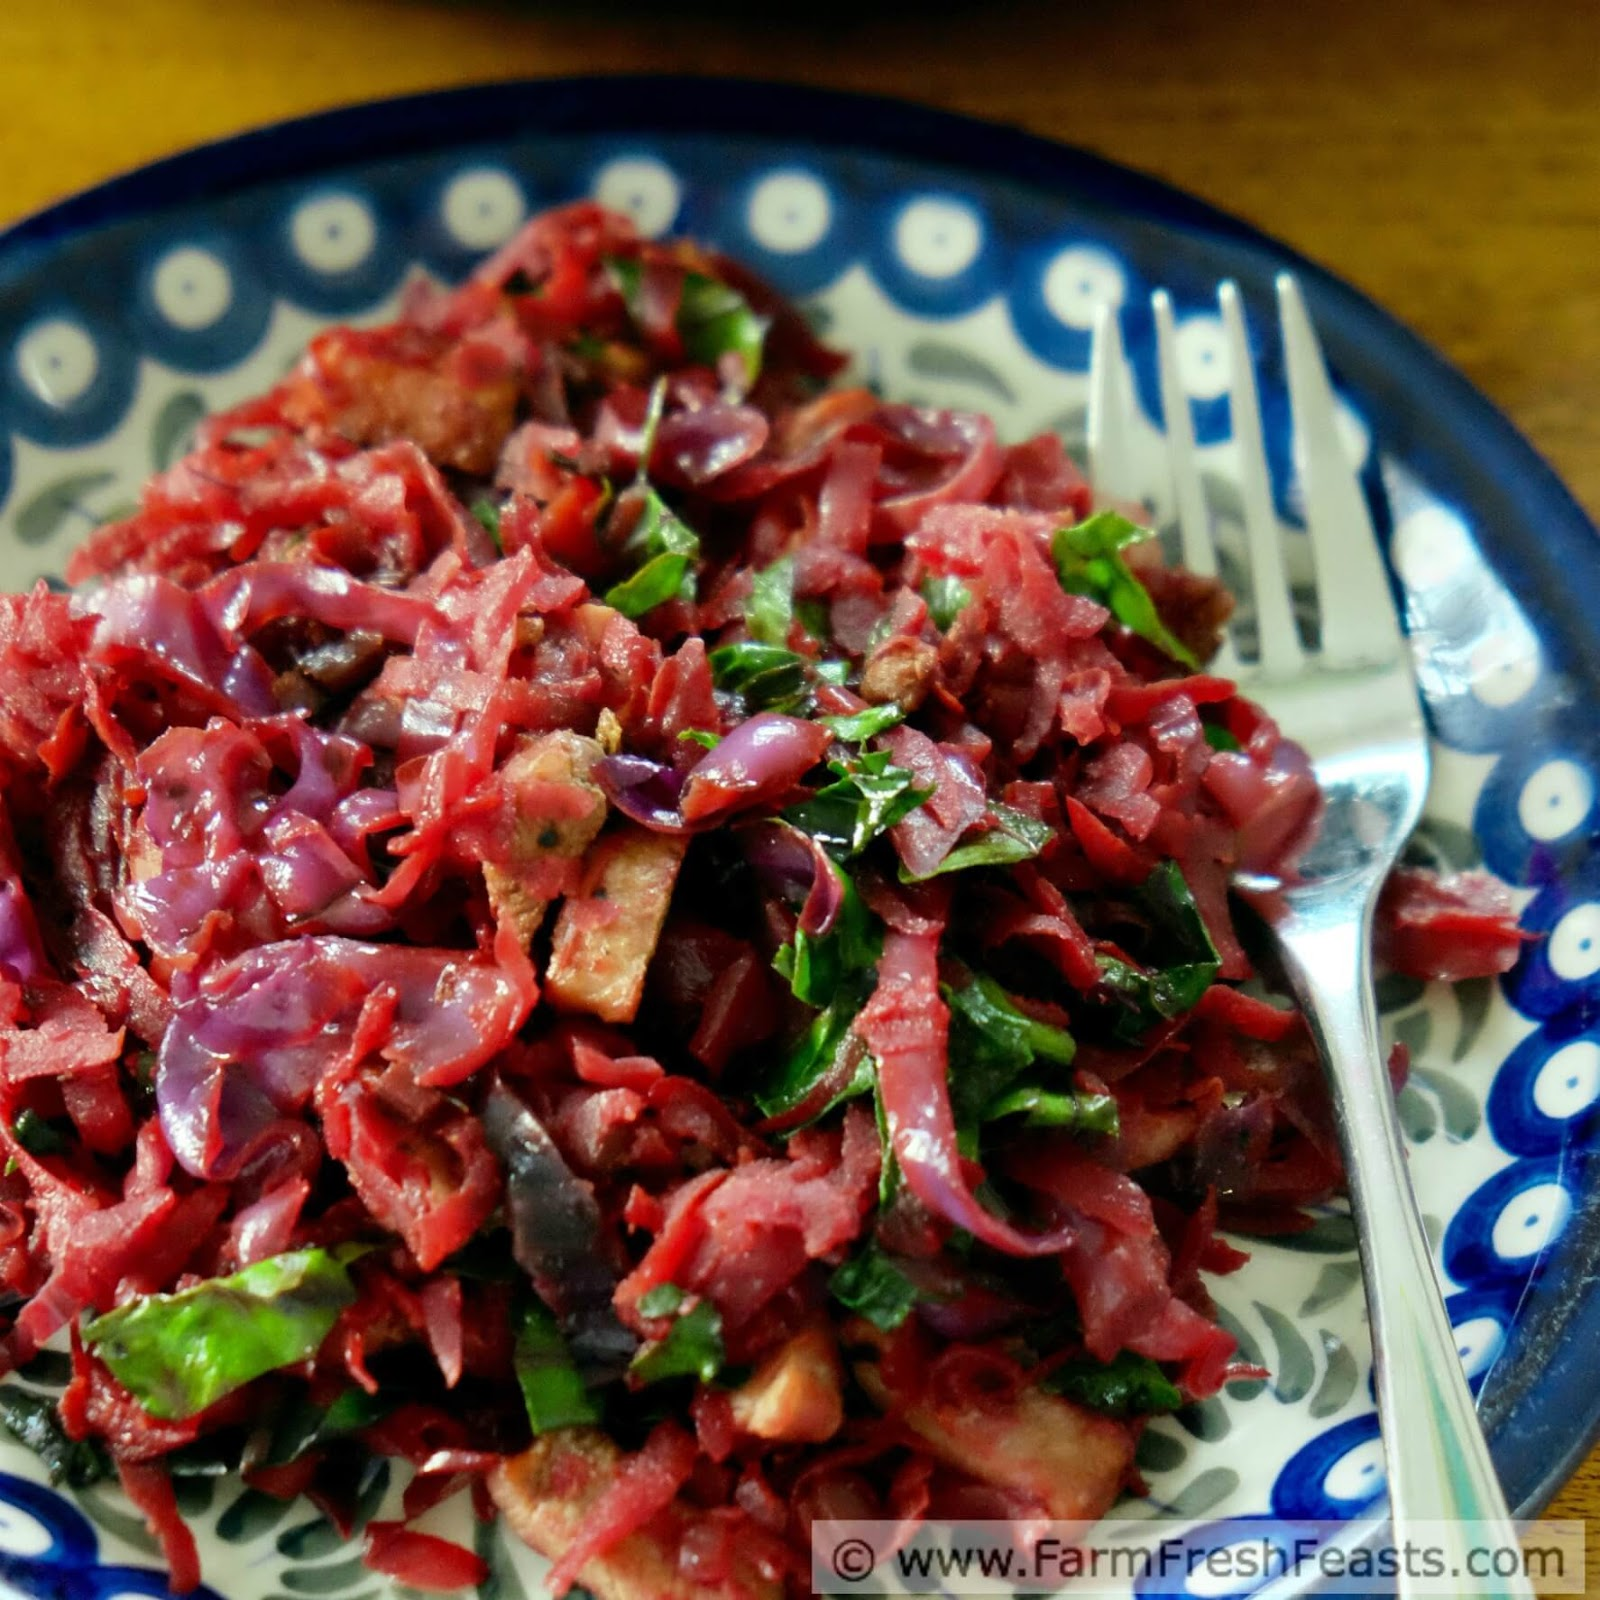 Red Pork and Cabbage with Beets